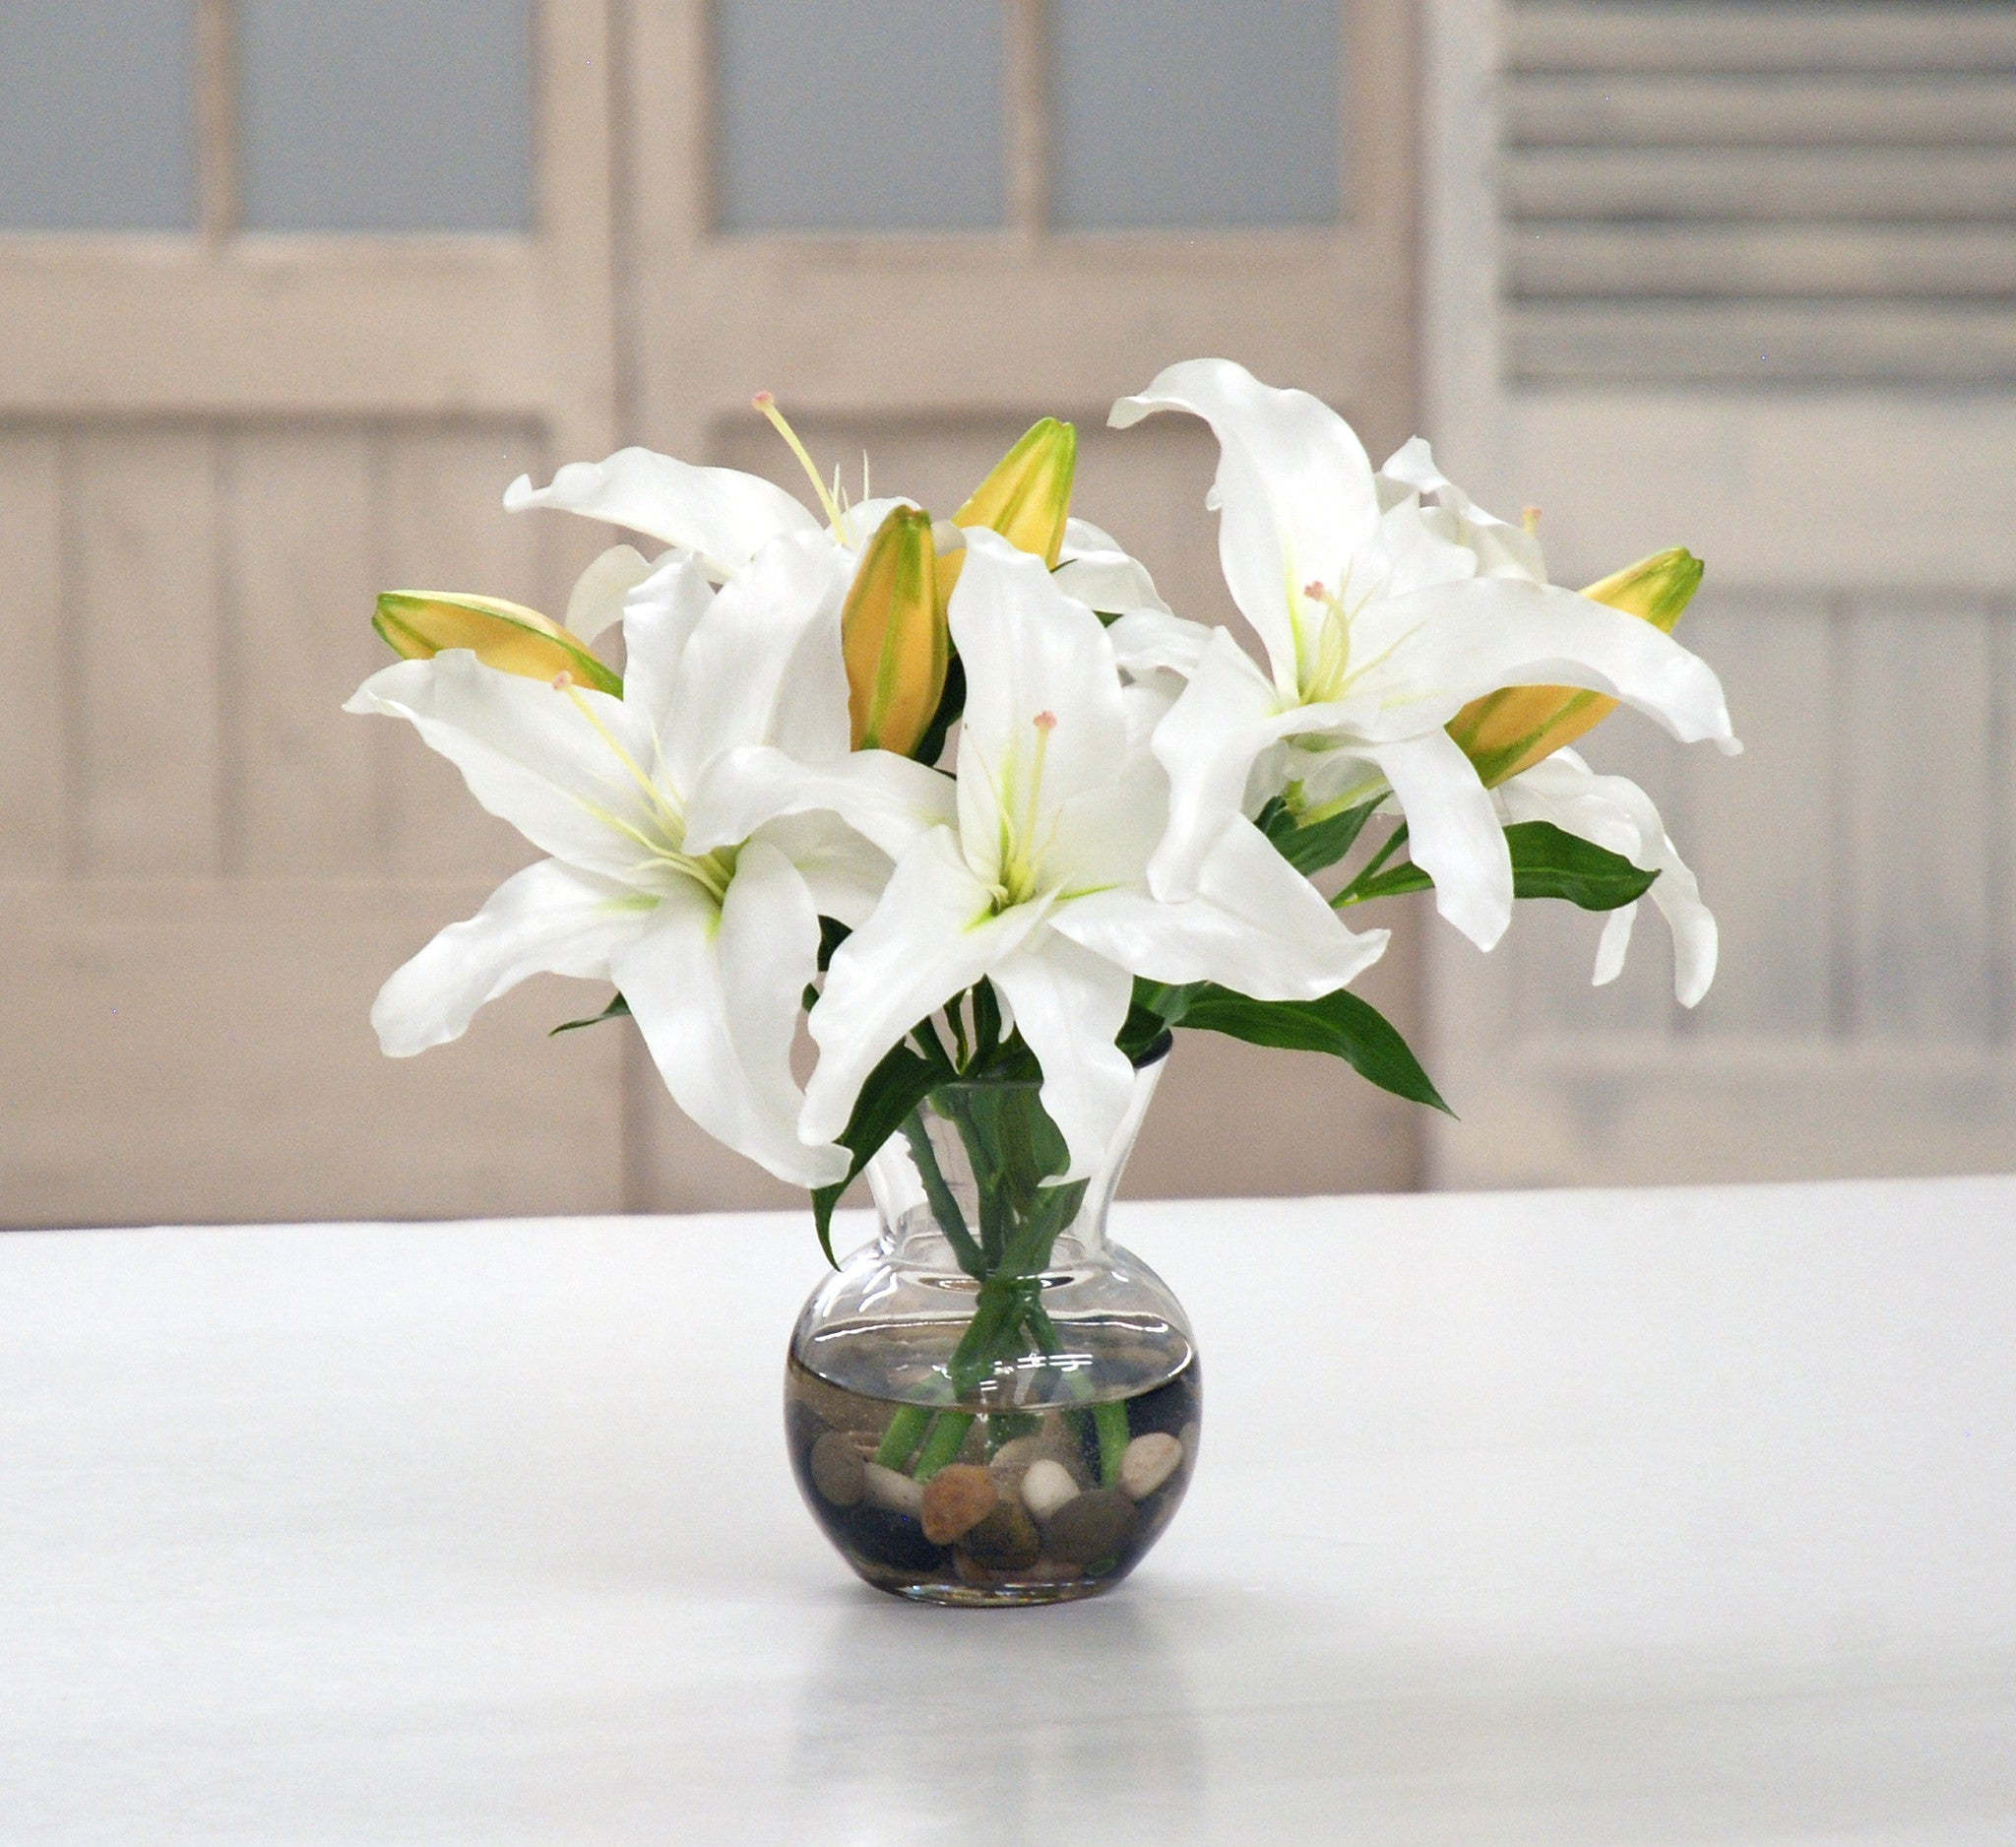 Casablanca lily winward home white lily casablanca in vase dp743 ww winward home faux floral arrangements reviewsmspy